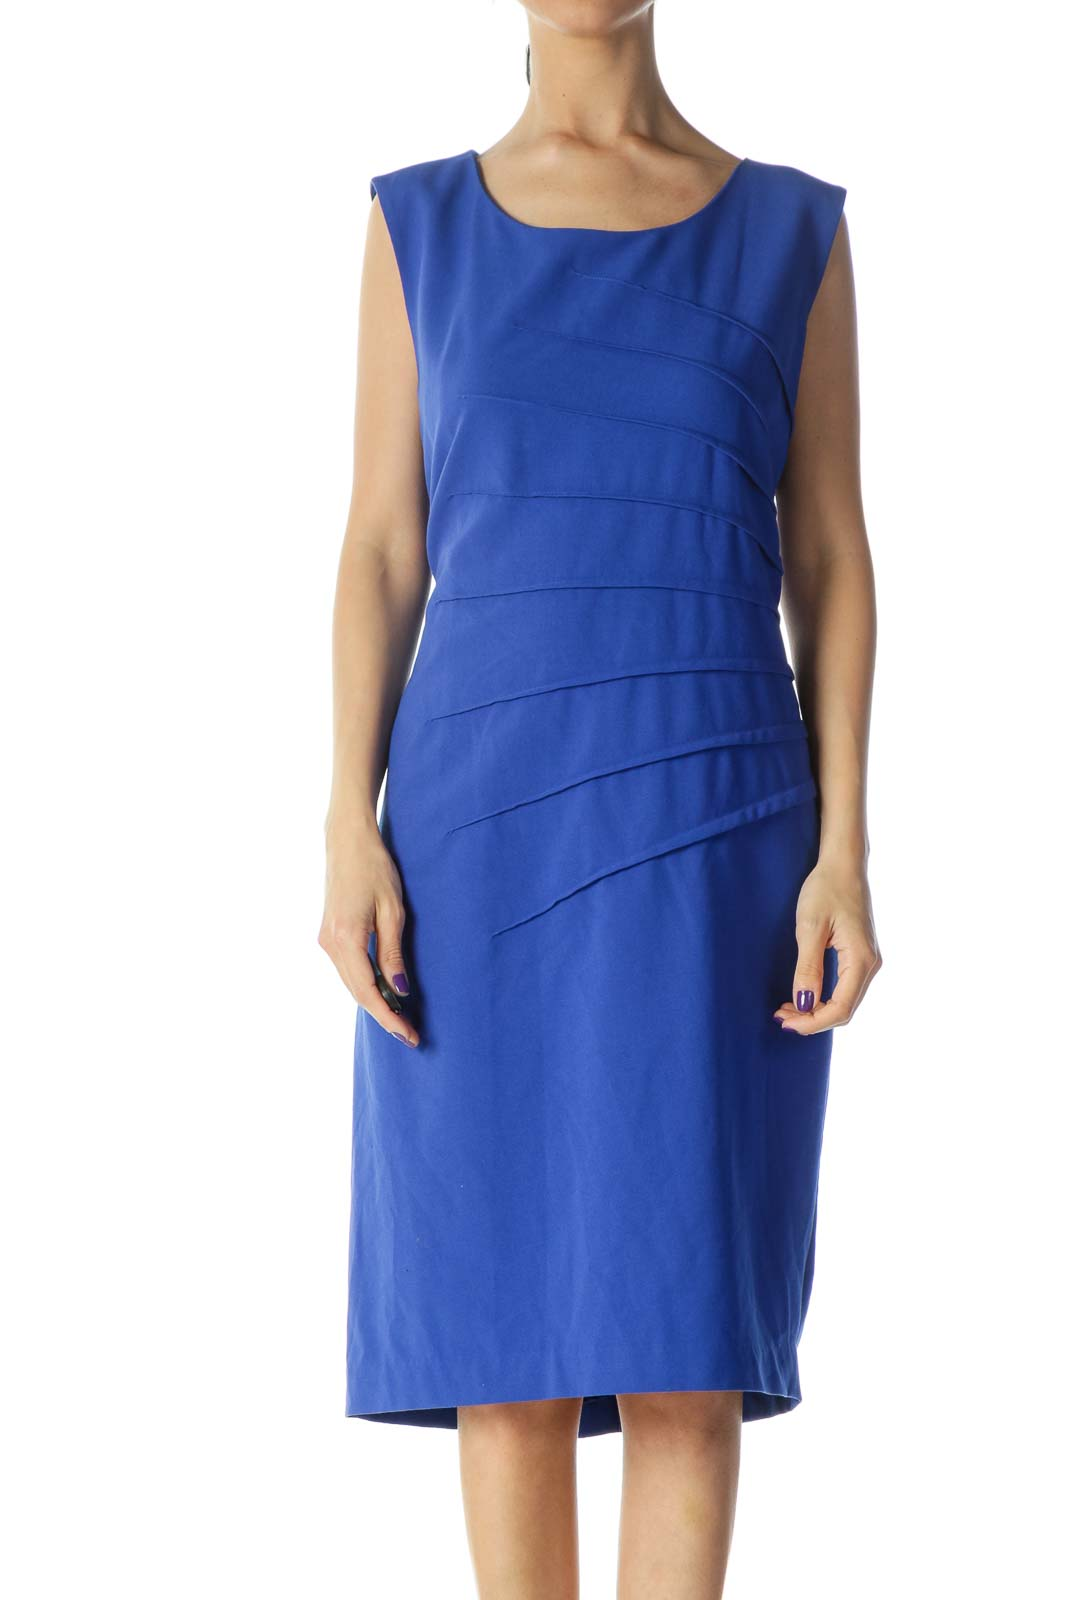 Blue Sheath Work Dress